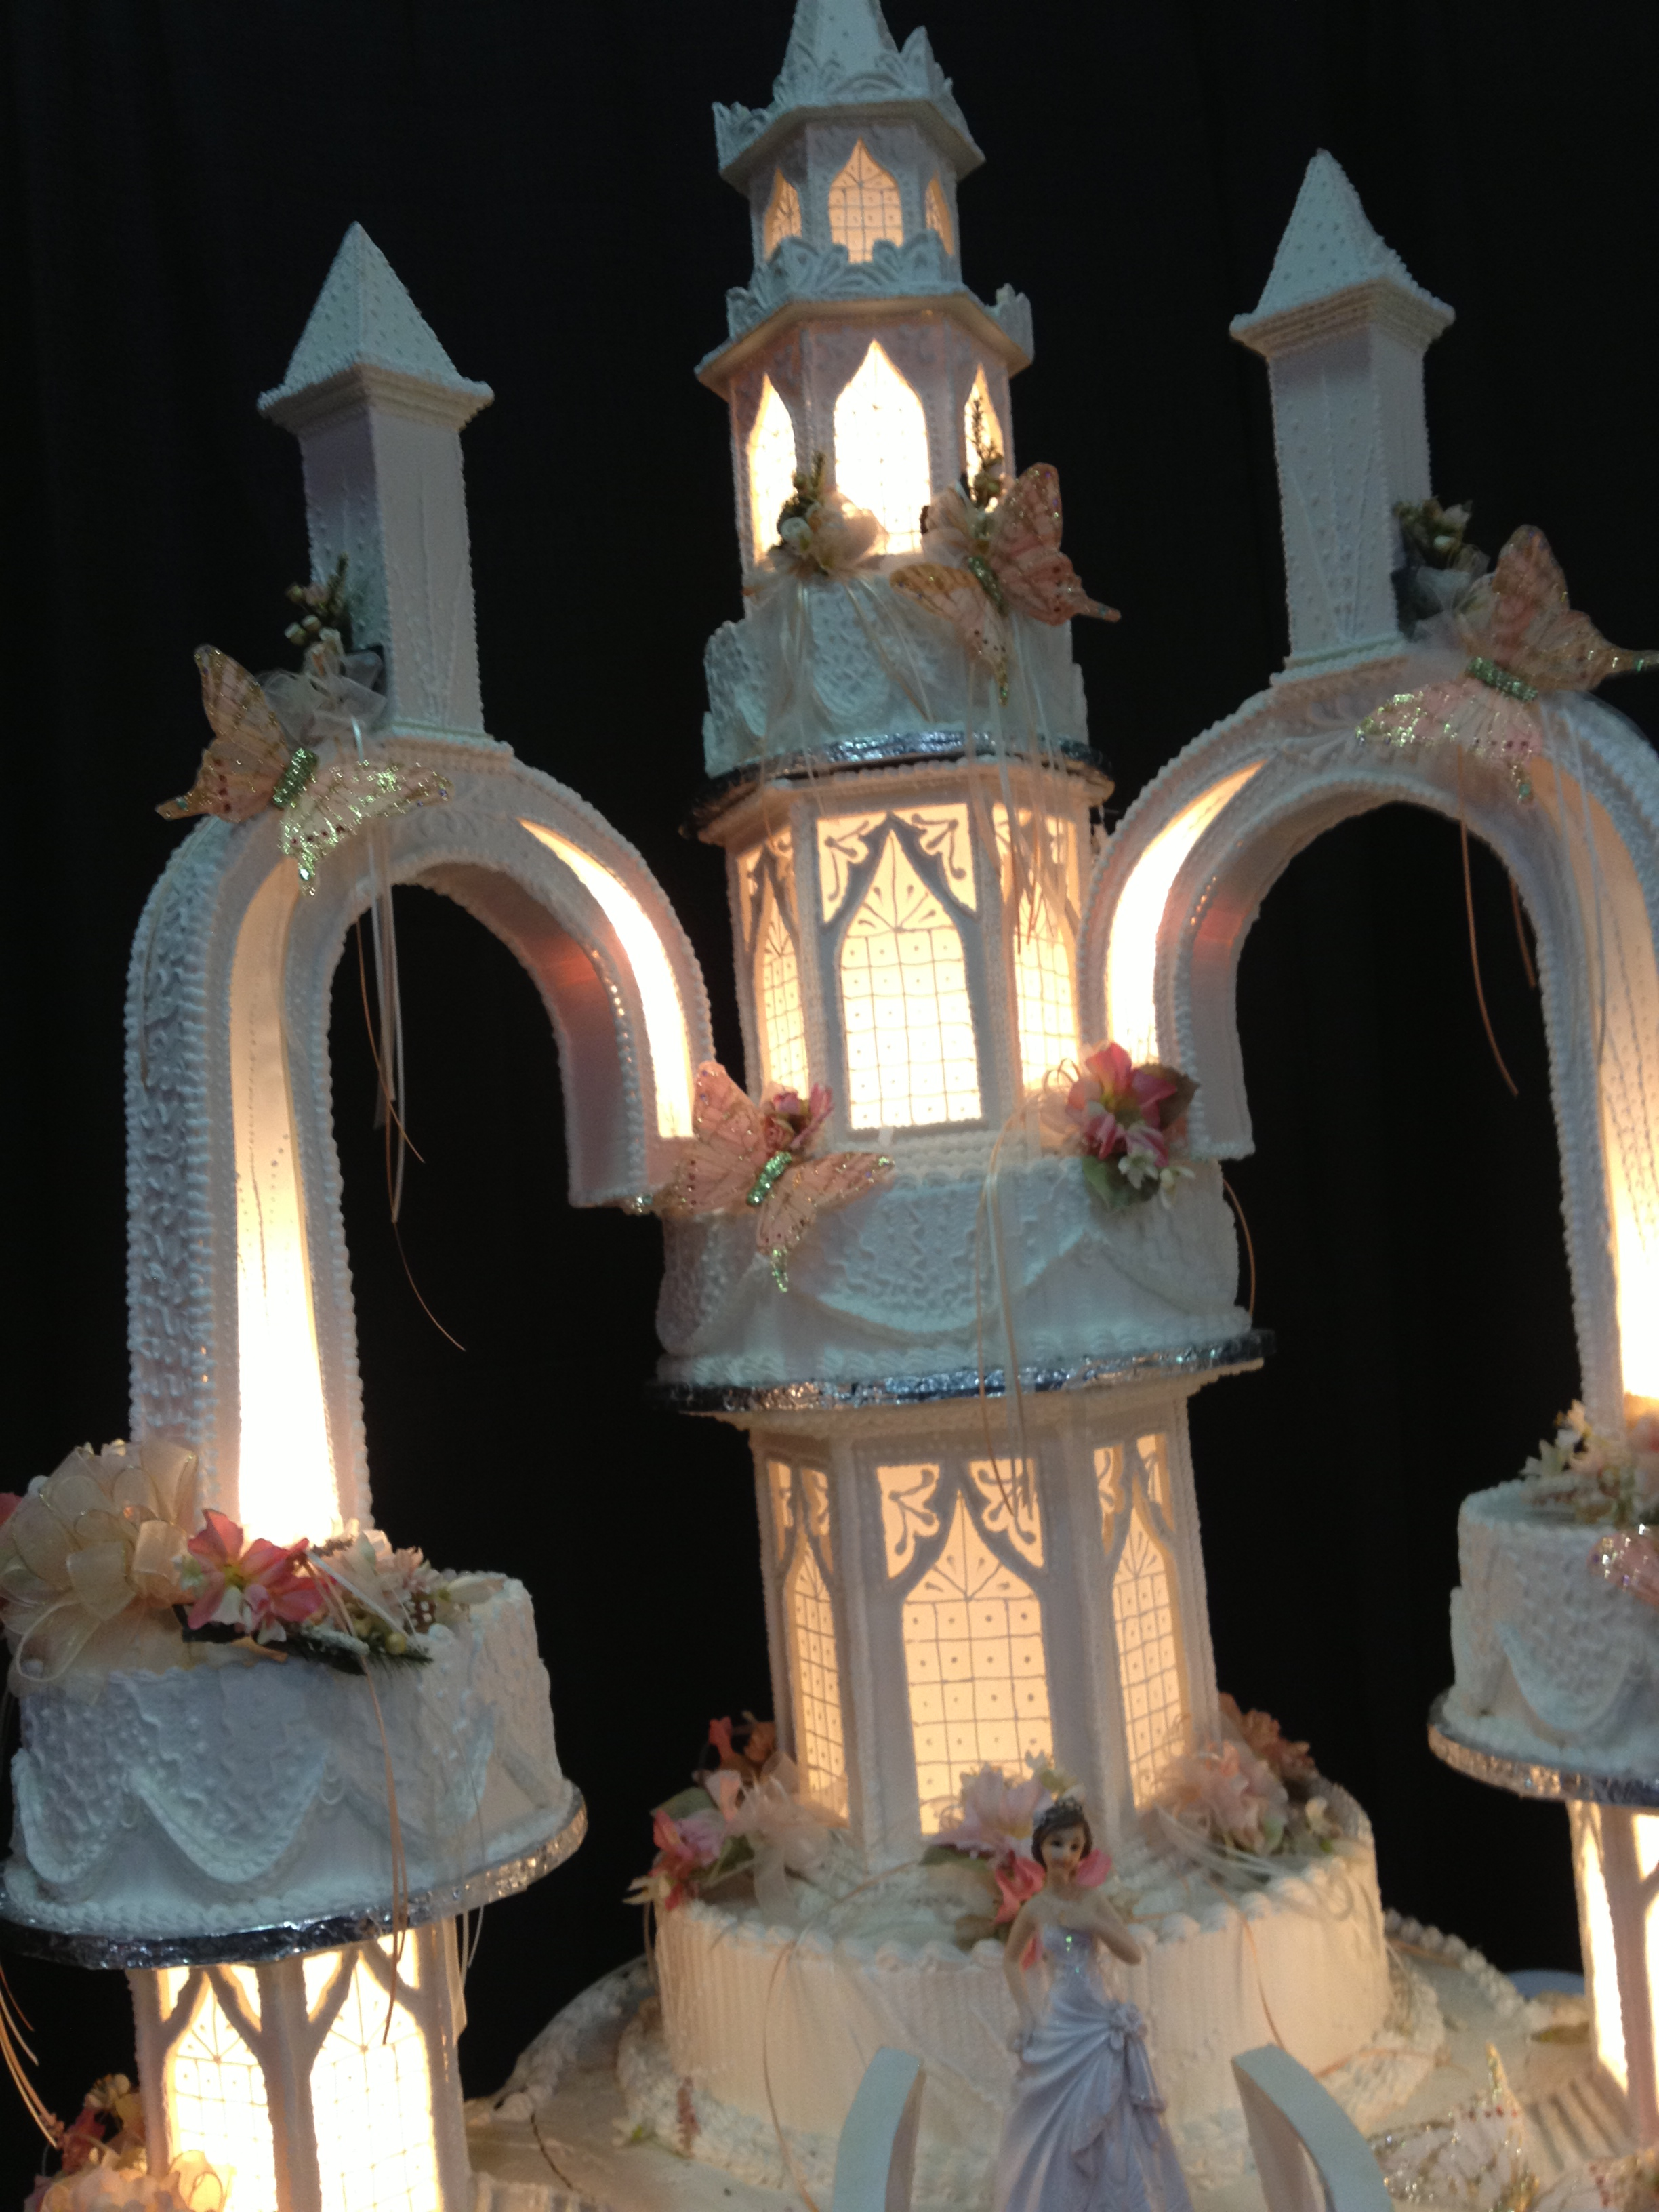 Unique Quinceaera Cakes from the Ontario Expo